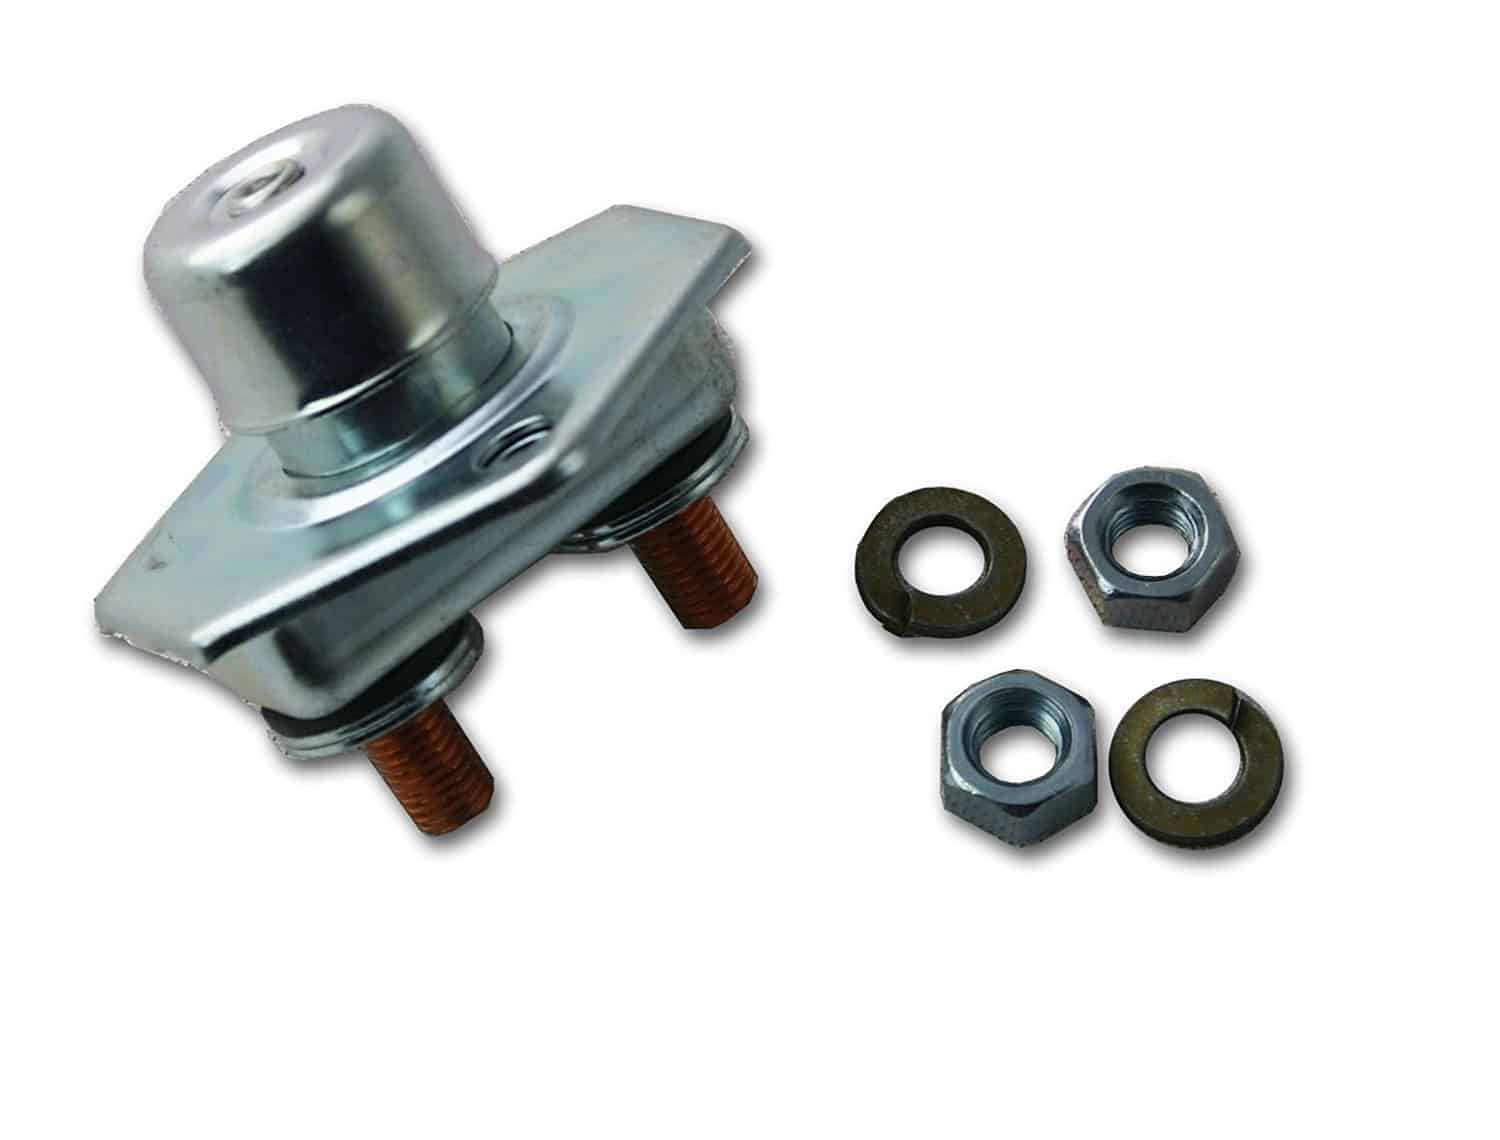 Push button starter switch for lawn mower.